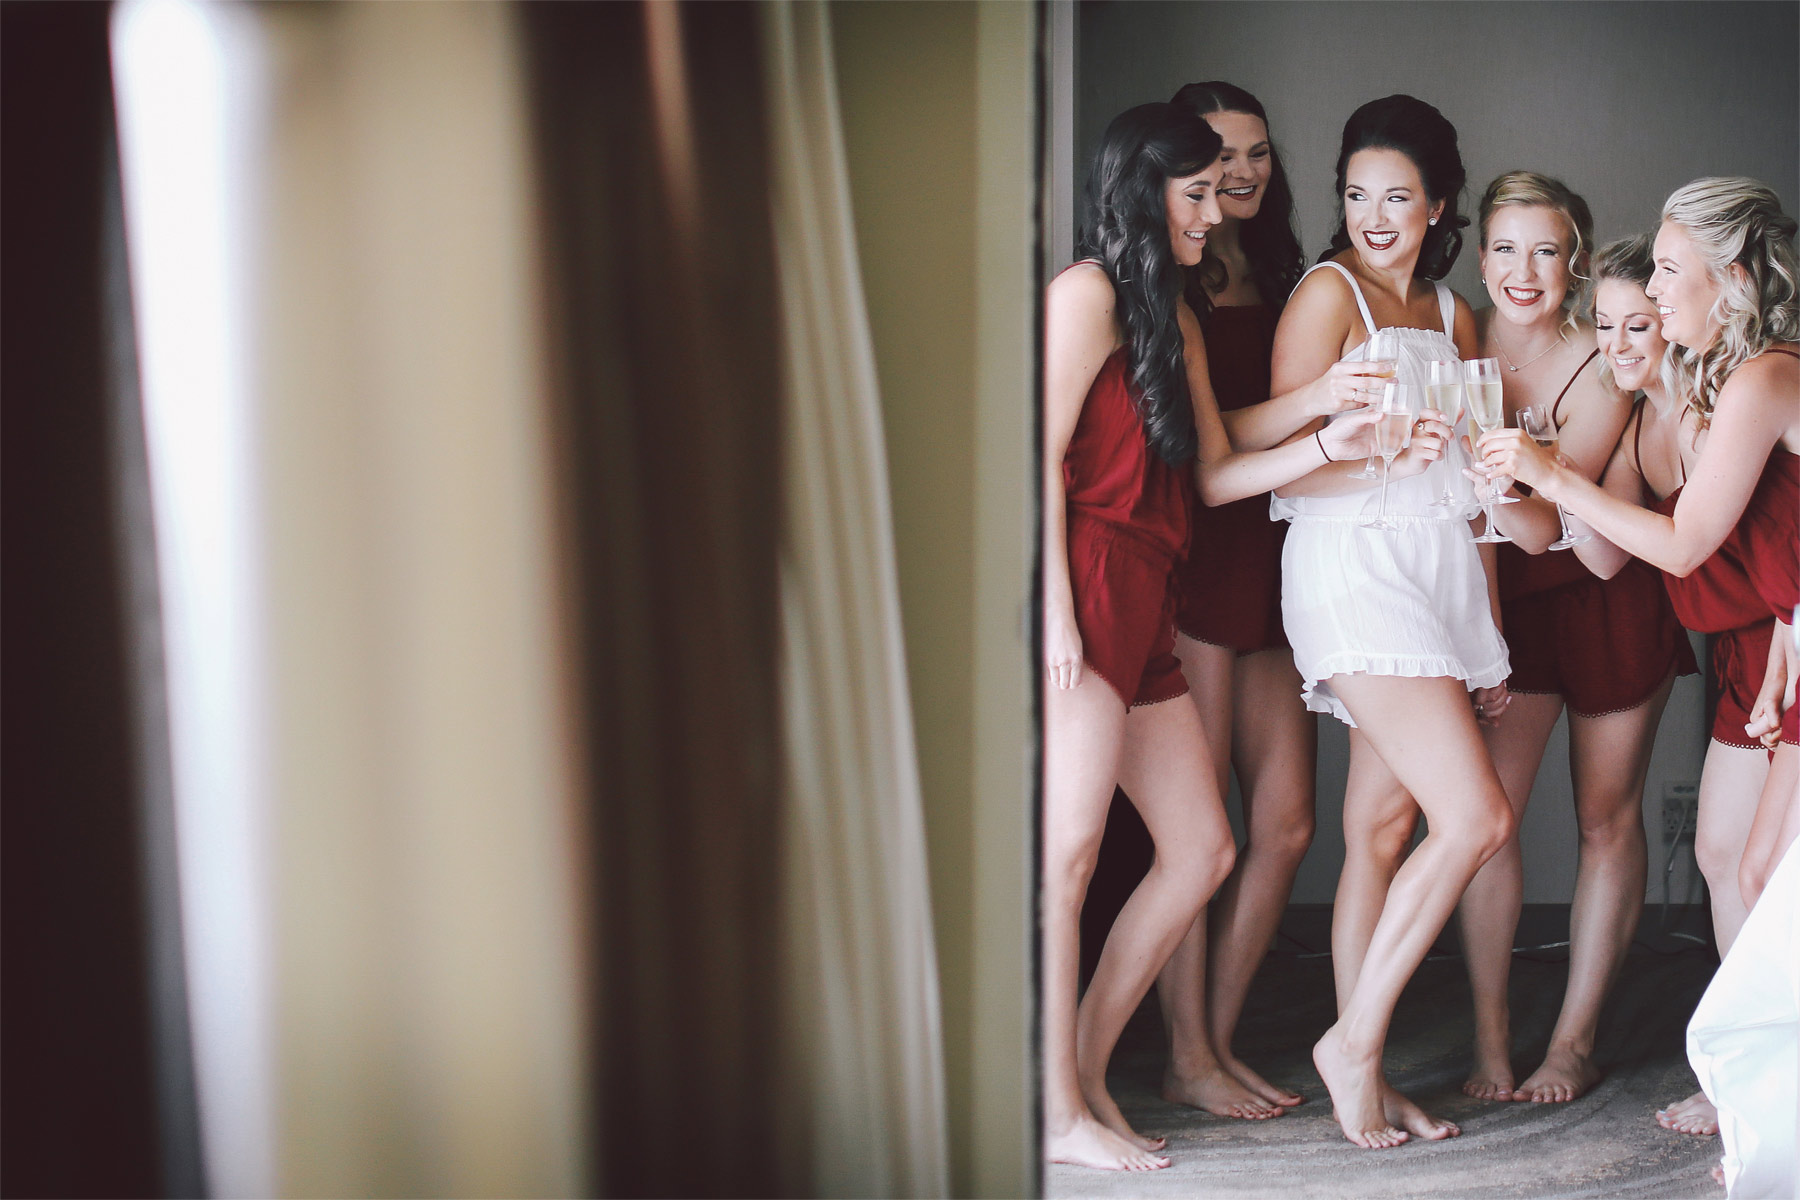 01-Kansas-City-Missouri-Destination-Wedding-Photography-by-Vick-Photography-Getting-Ready-Bridesmaids-Robes-Carly-and-Kenny.jpg